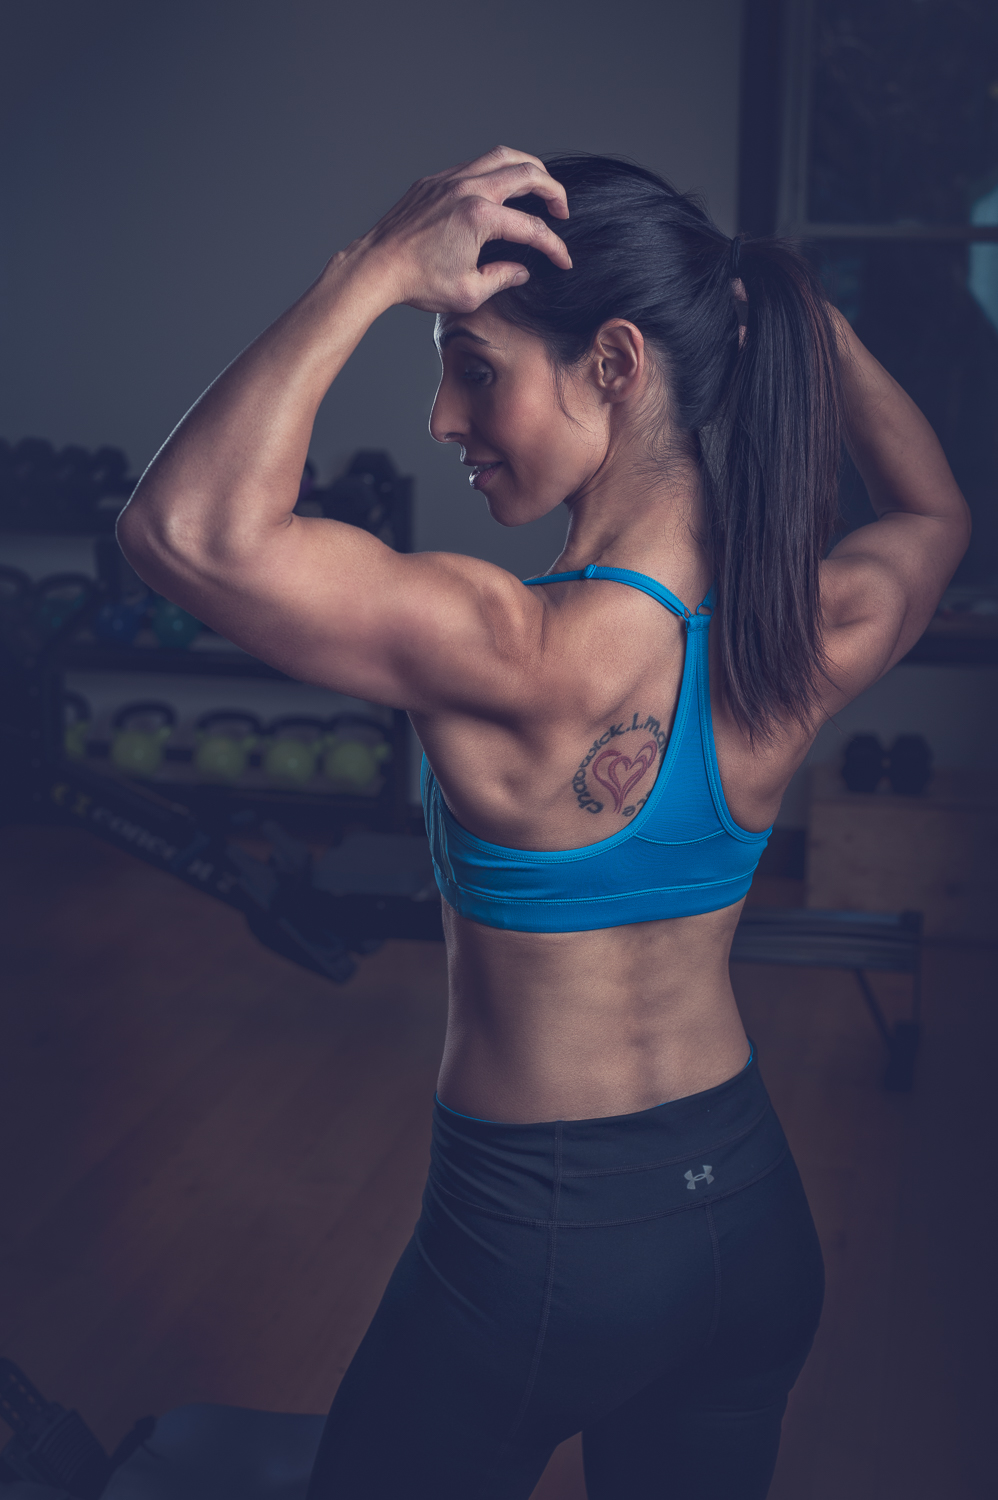 Hamilton Toronto Fitness Photographer - Flexing Female Model by Marek Michalek.jpg